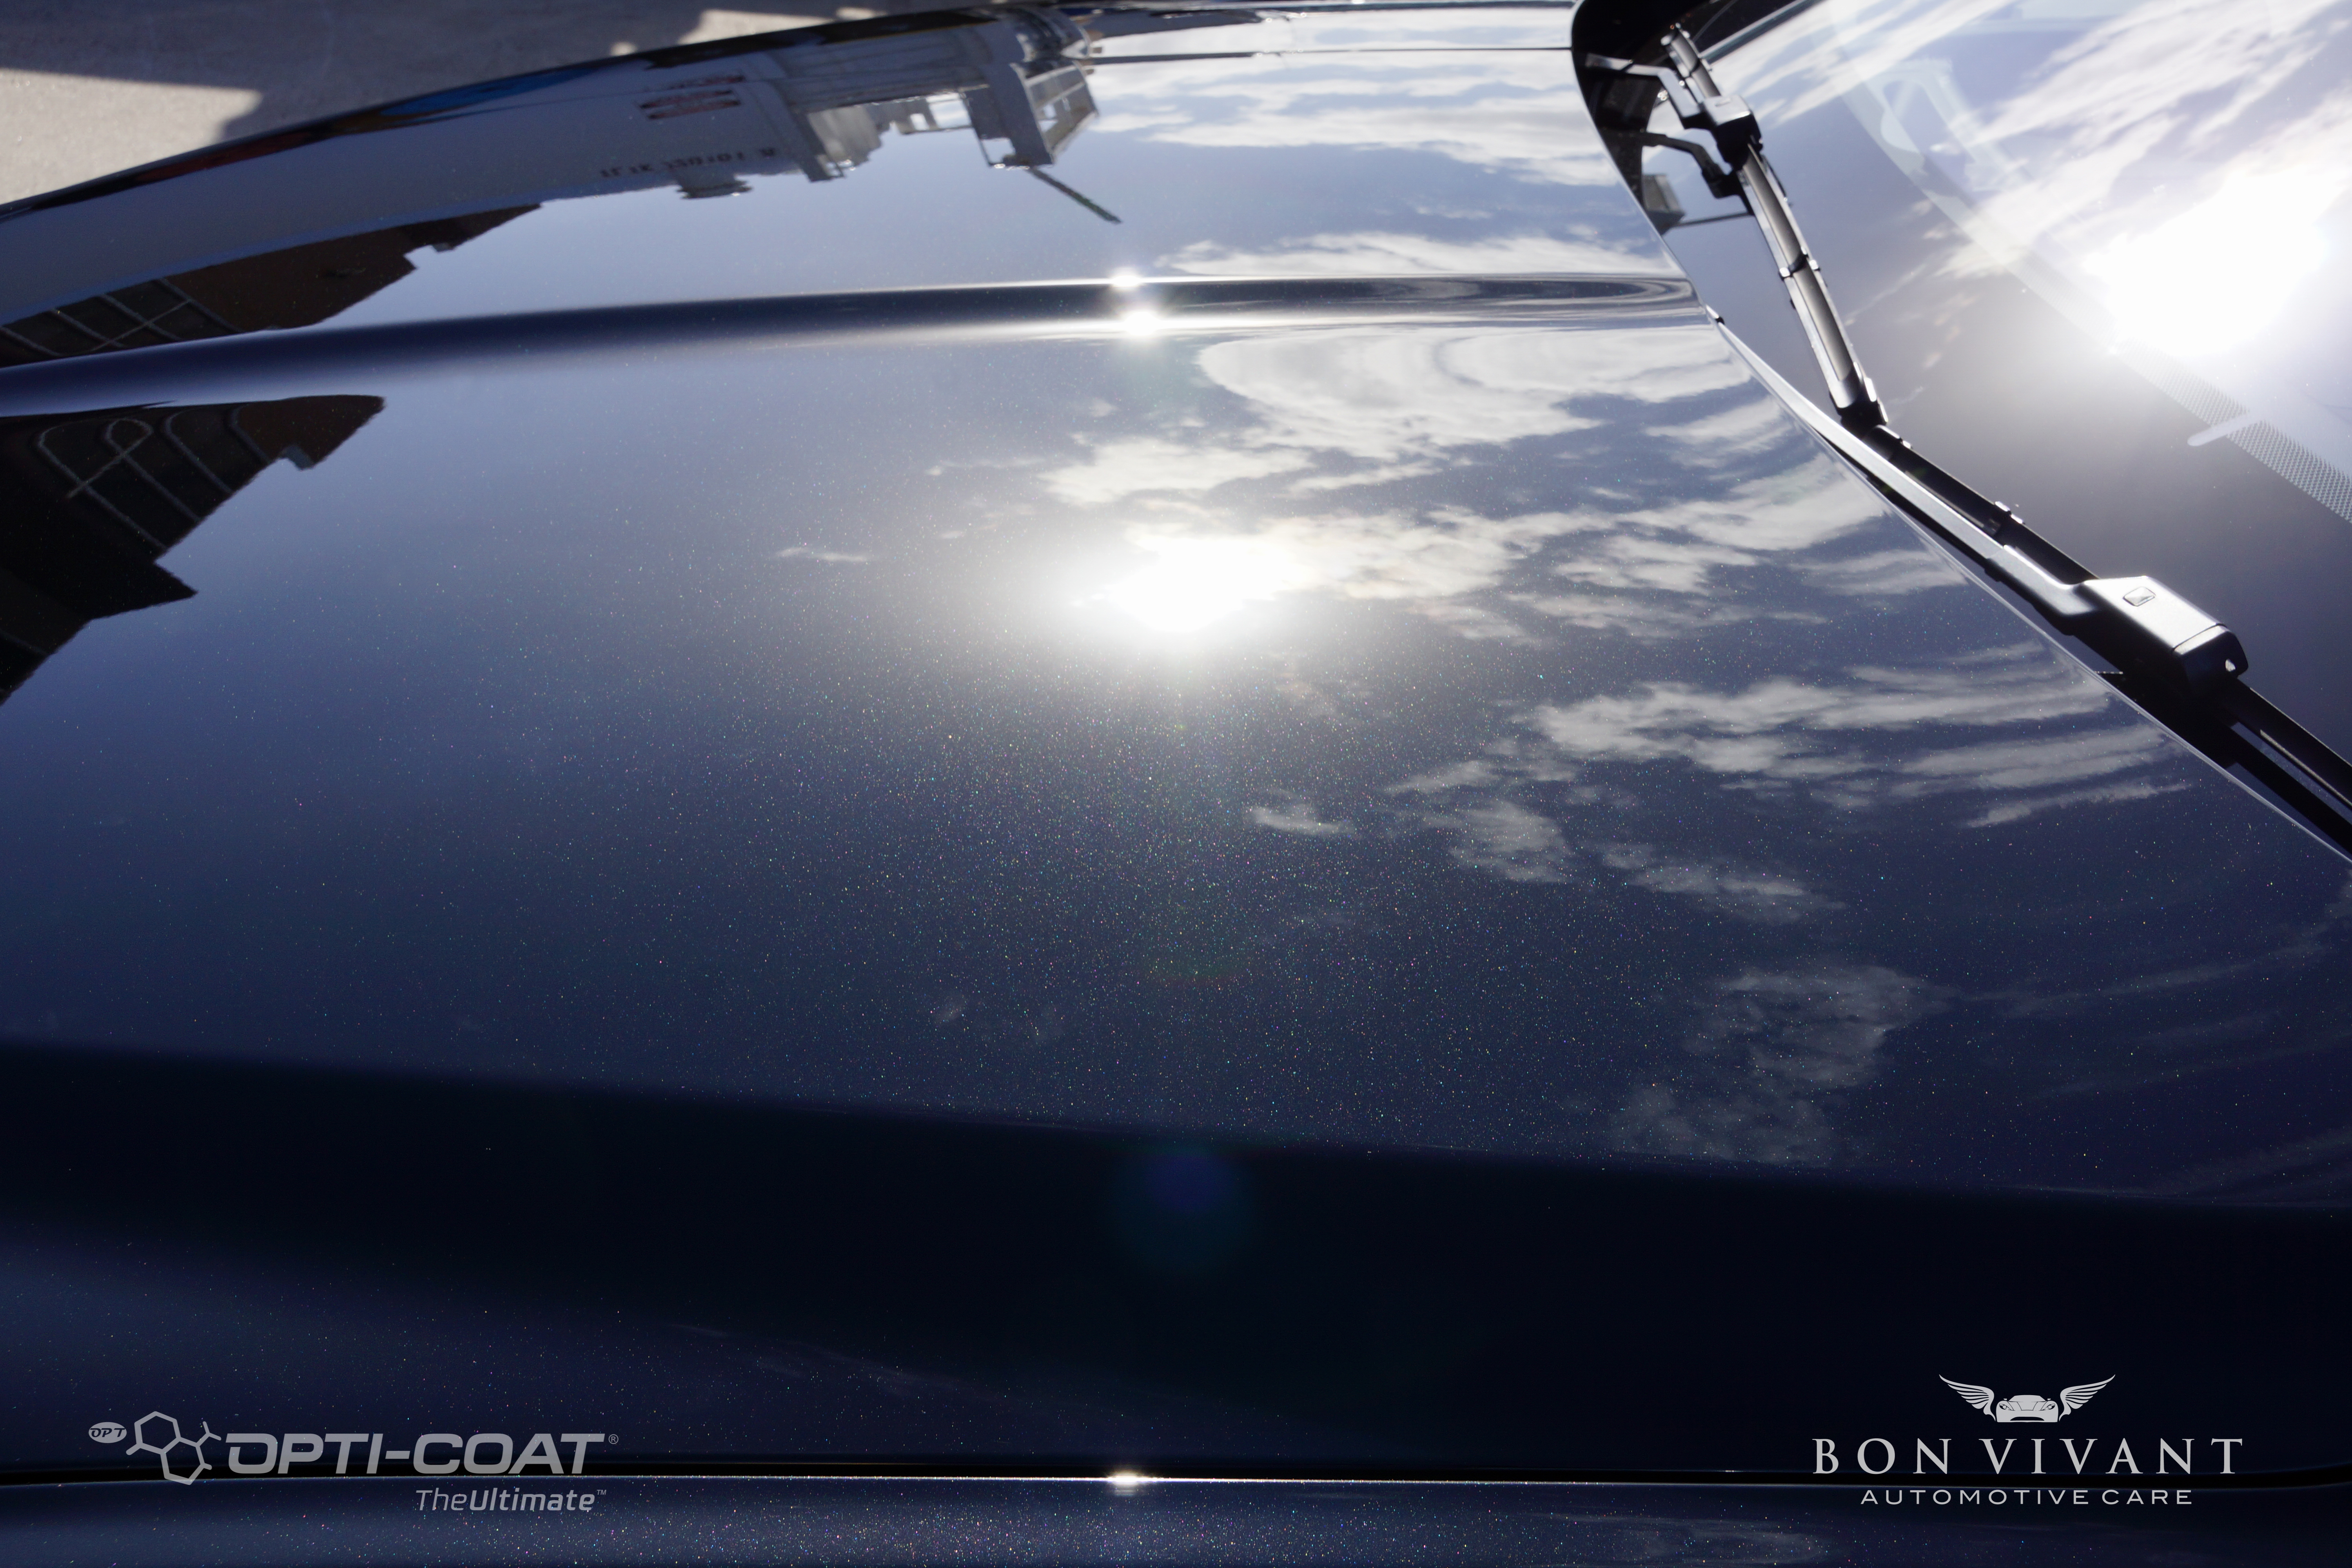 Bon Vivant Paint Protection Coating | Opti-Coat Pro+ | Jaguar XE 2.5t